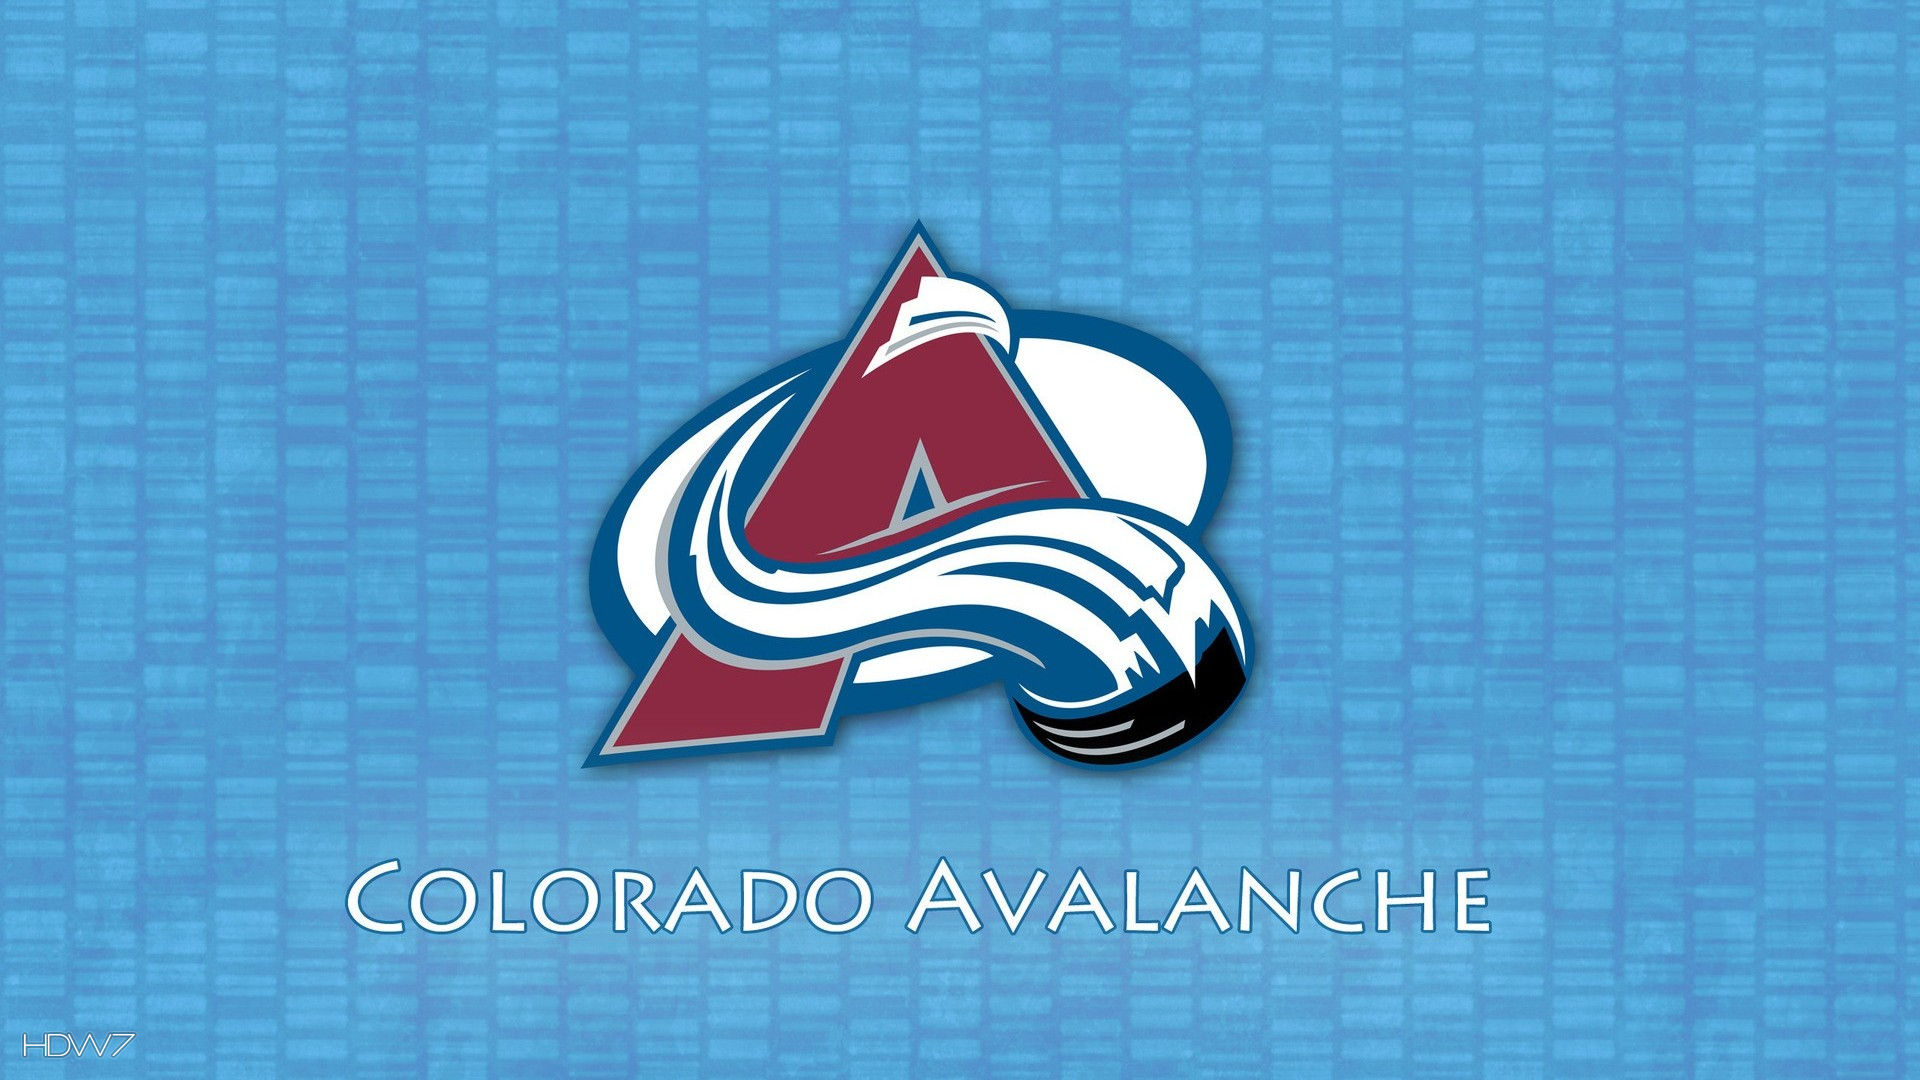 wallpaper name colorado avalanche 1080p jpg wallpaper added may 24 1920x1080